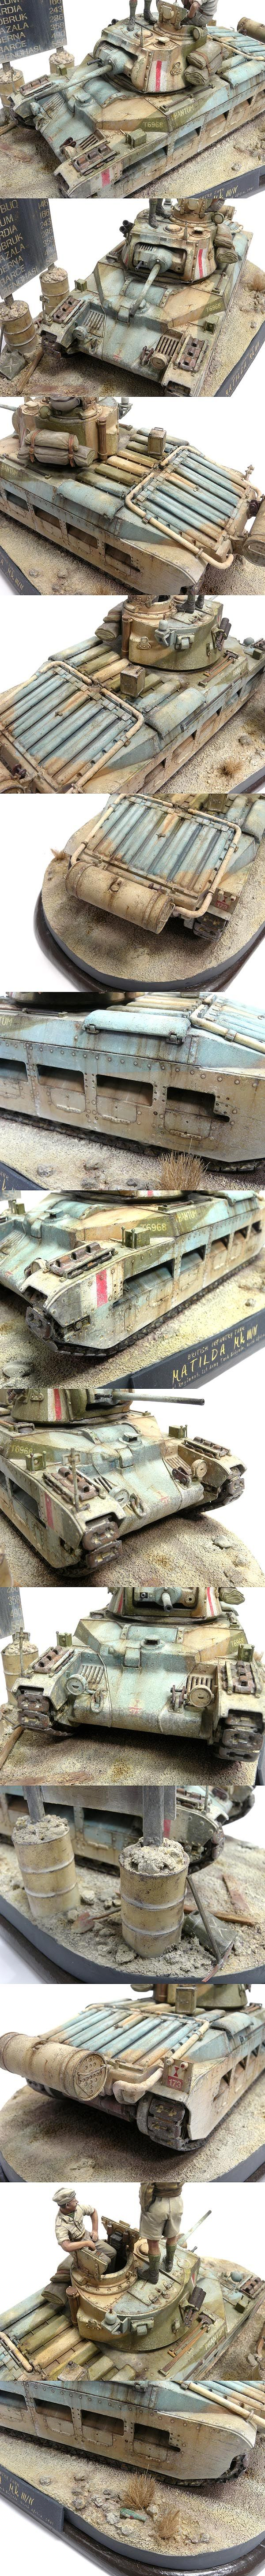 "Matilda Mk. III/IV. Phantom Regiment 1st Army Brigade. North Africa 1941. TAMIYA 1/35 scale. By Dennis ""Seed"" Wong. #scale_model"